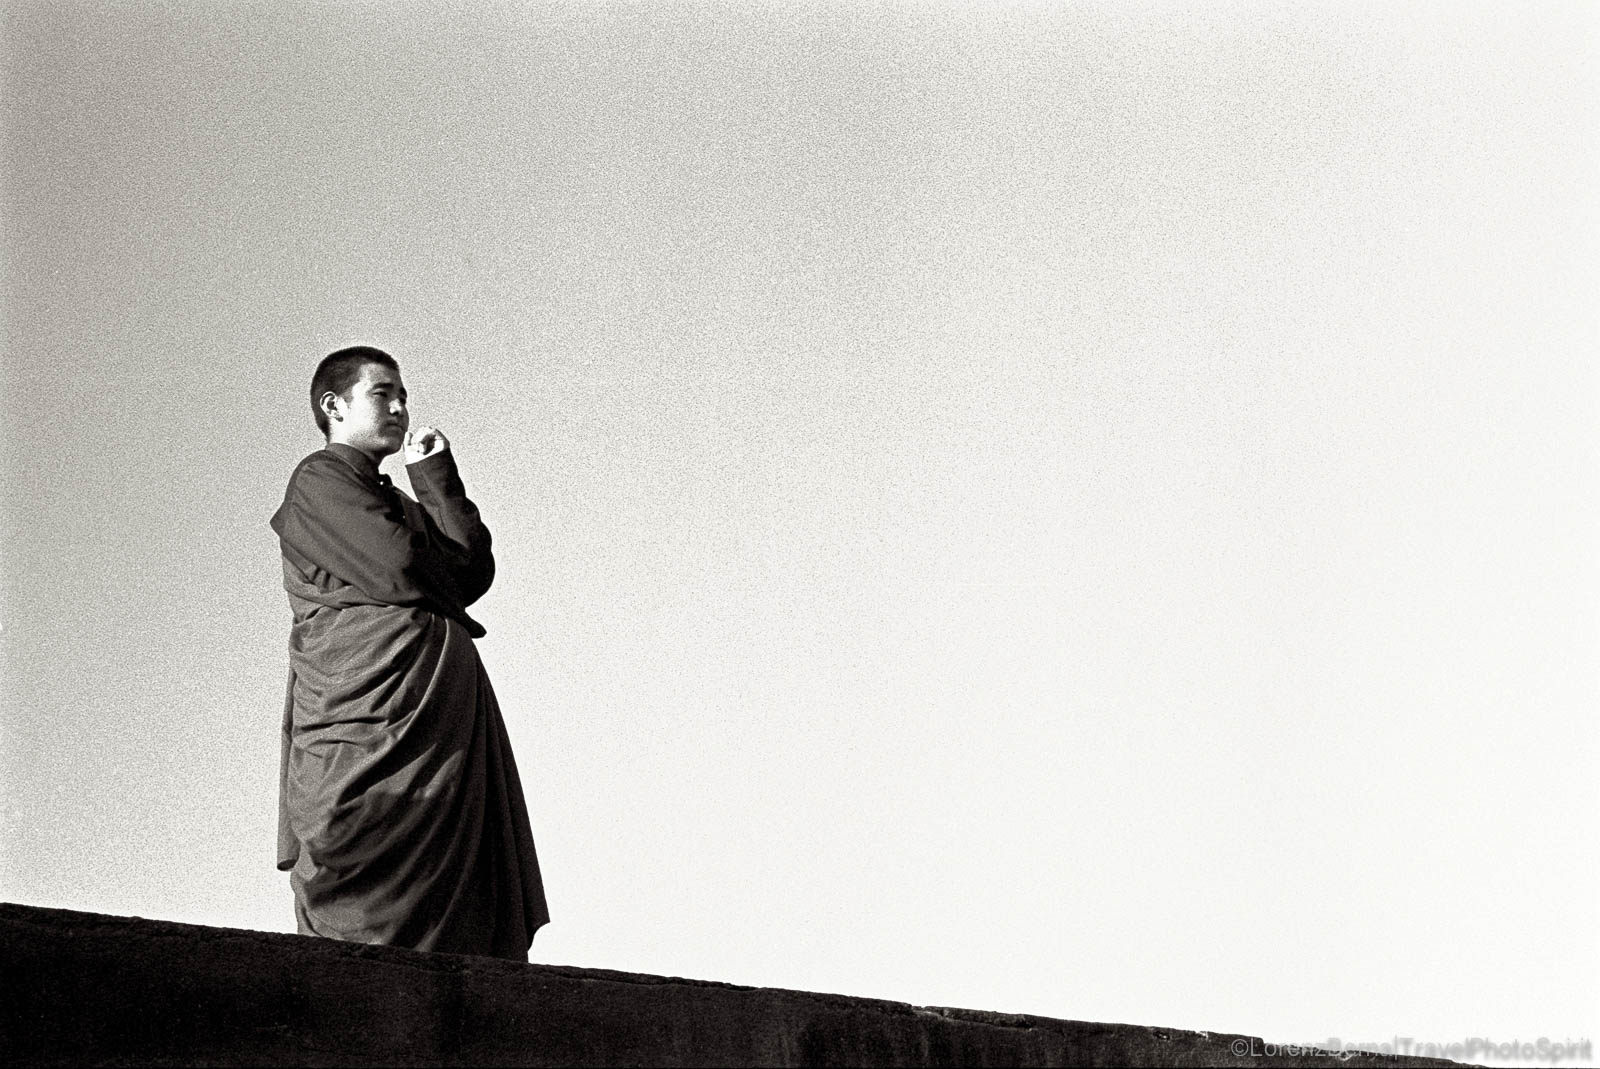 Buddhist Monk in Contemplation, Nepal.